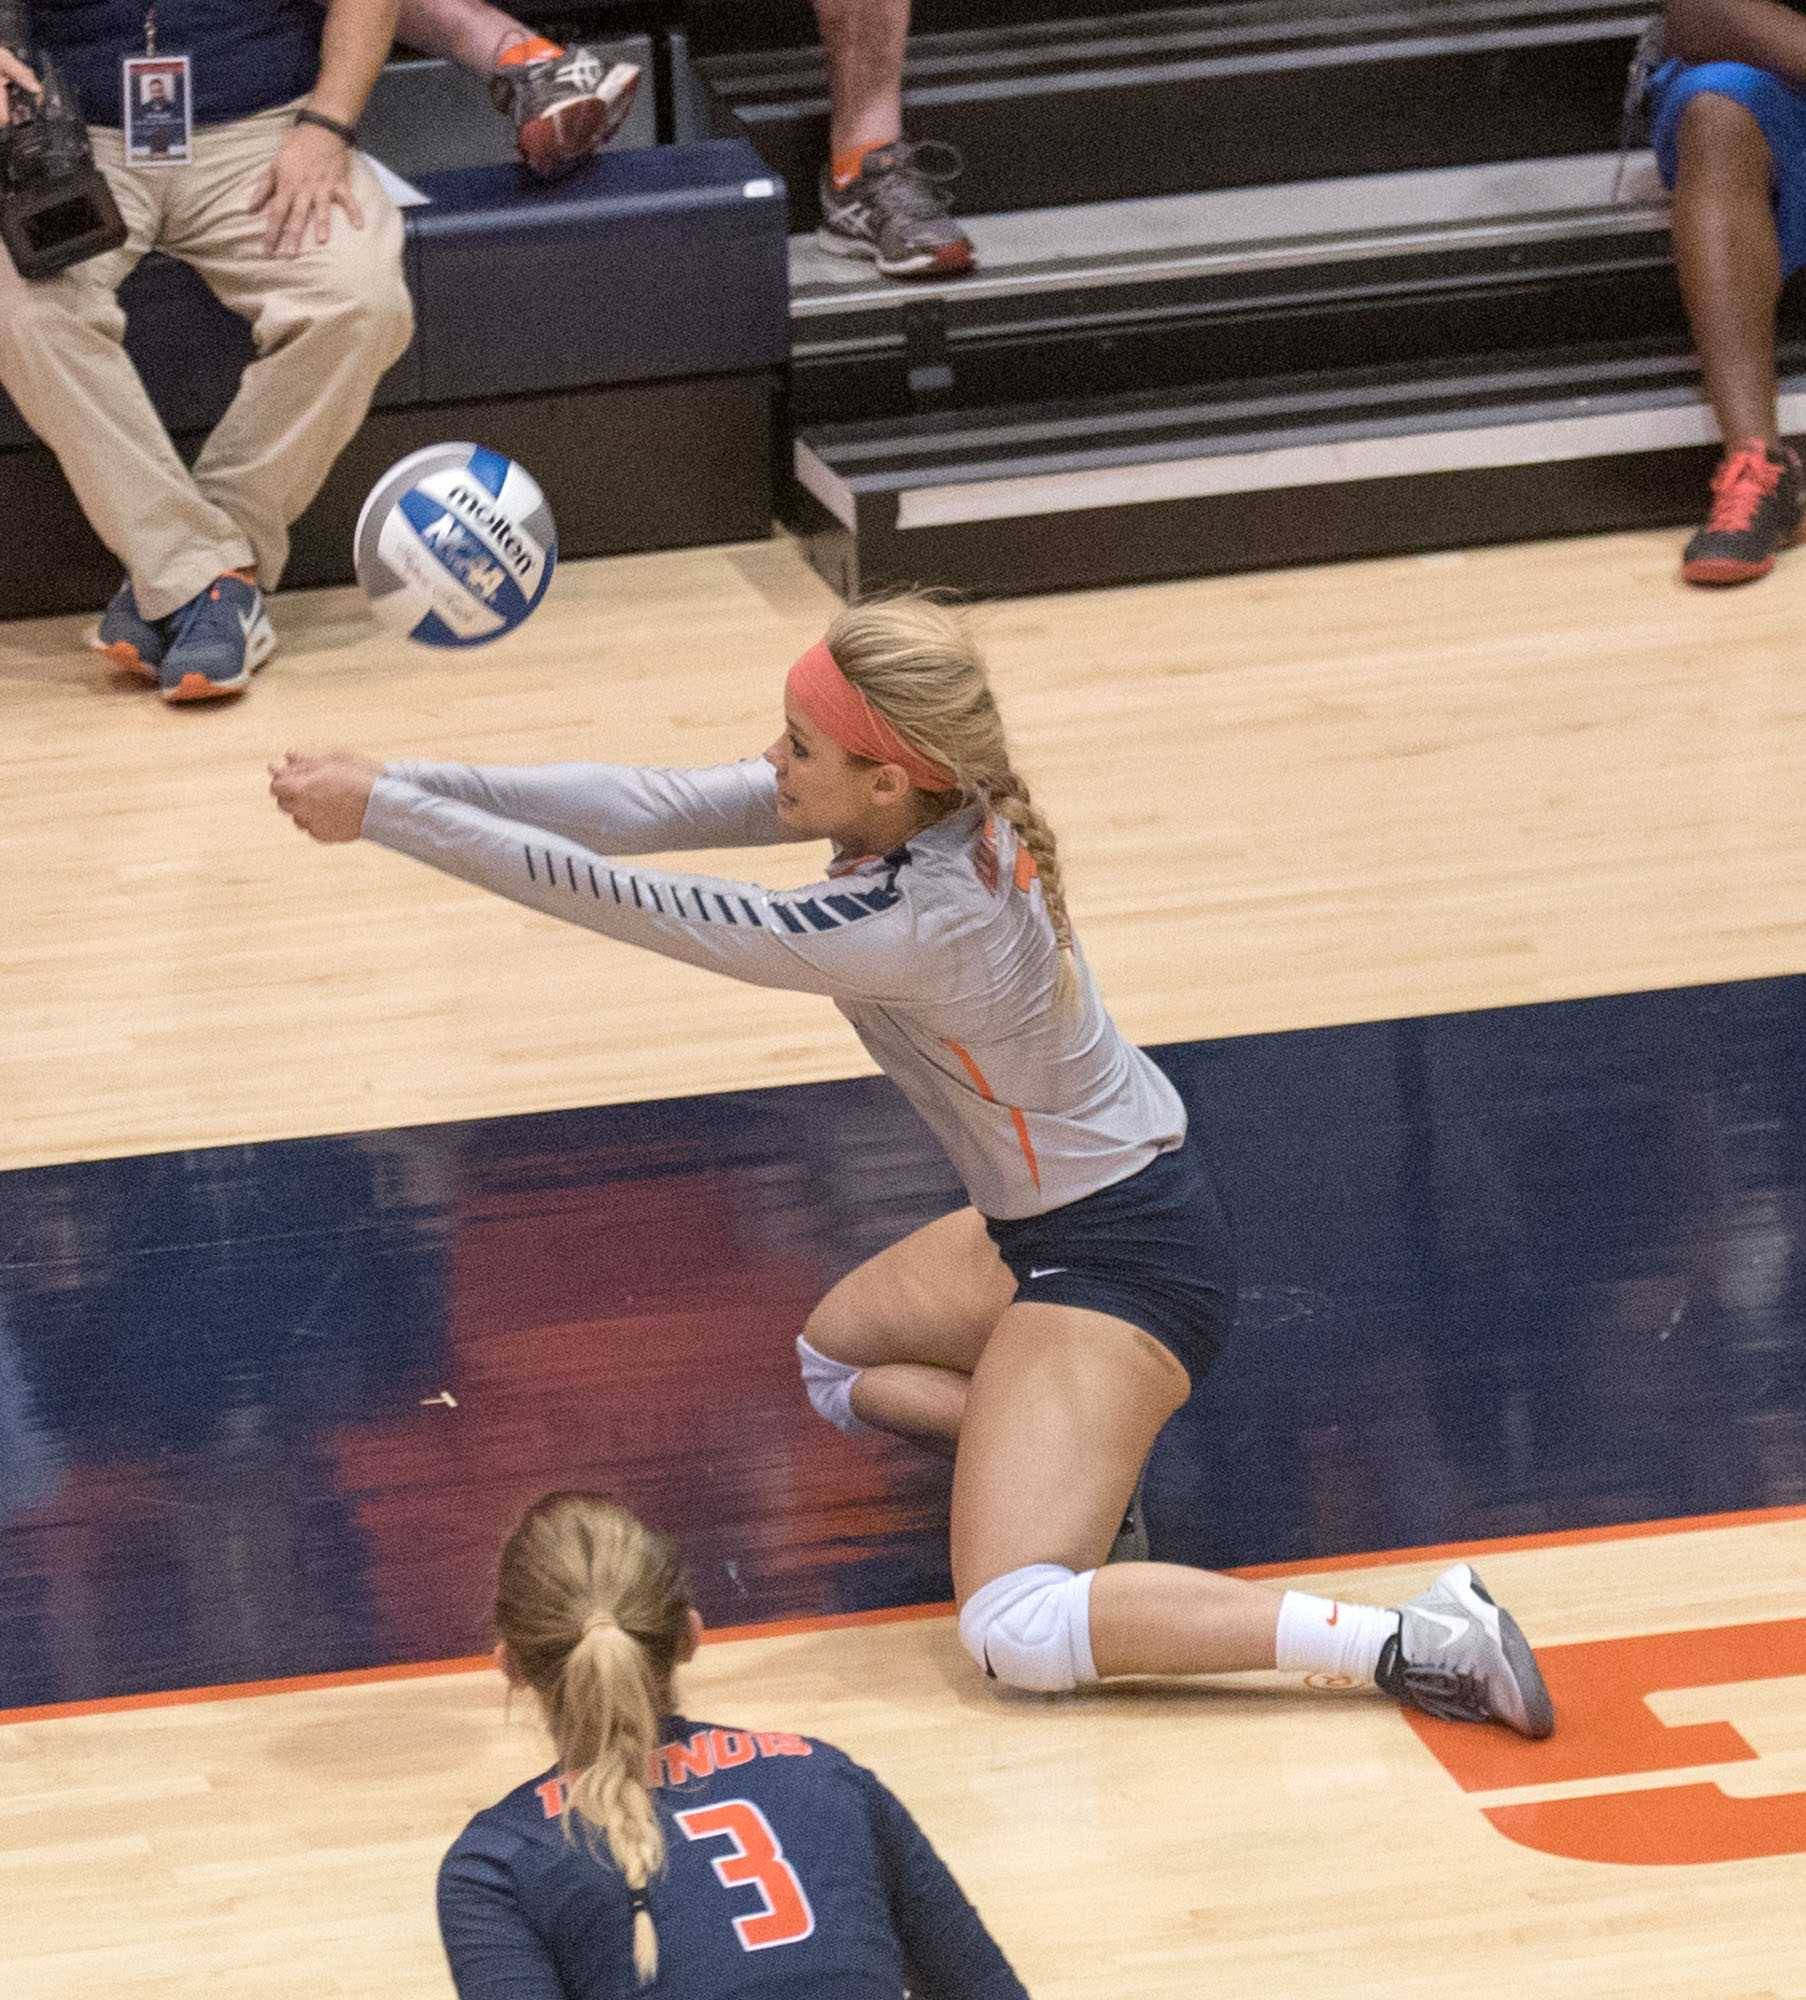 Julia Conard digs the ball during Friday's game against Penn State. Illinois lost 1-3.